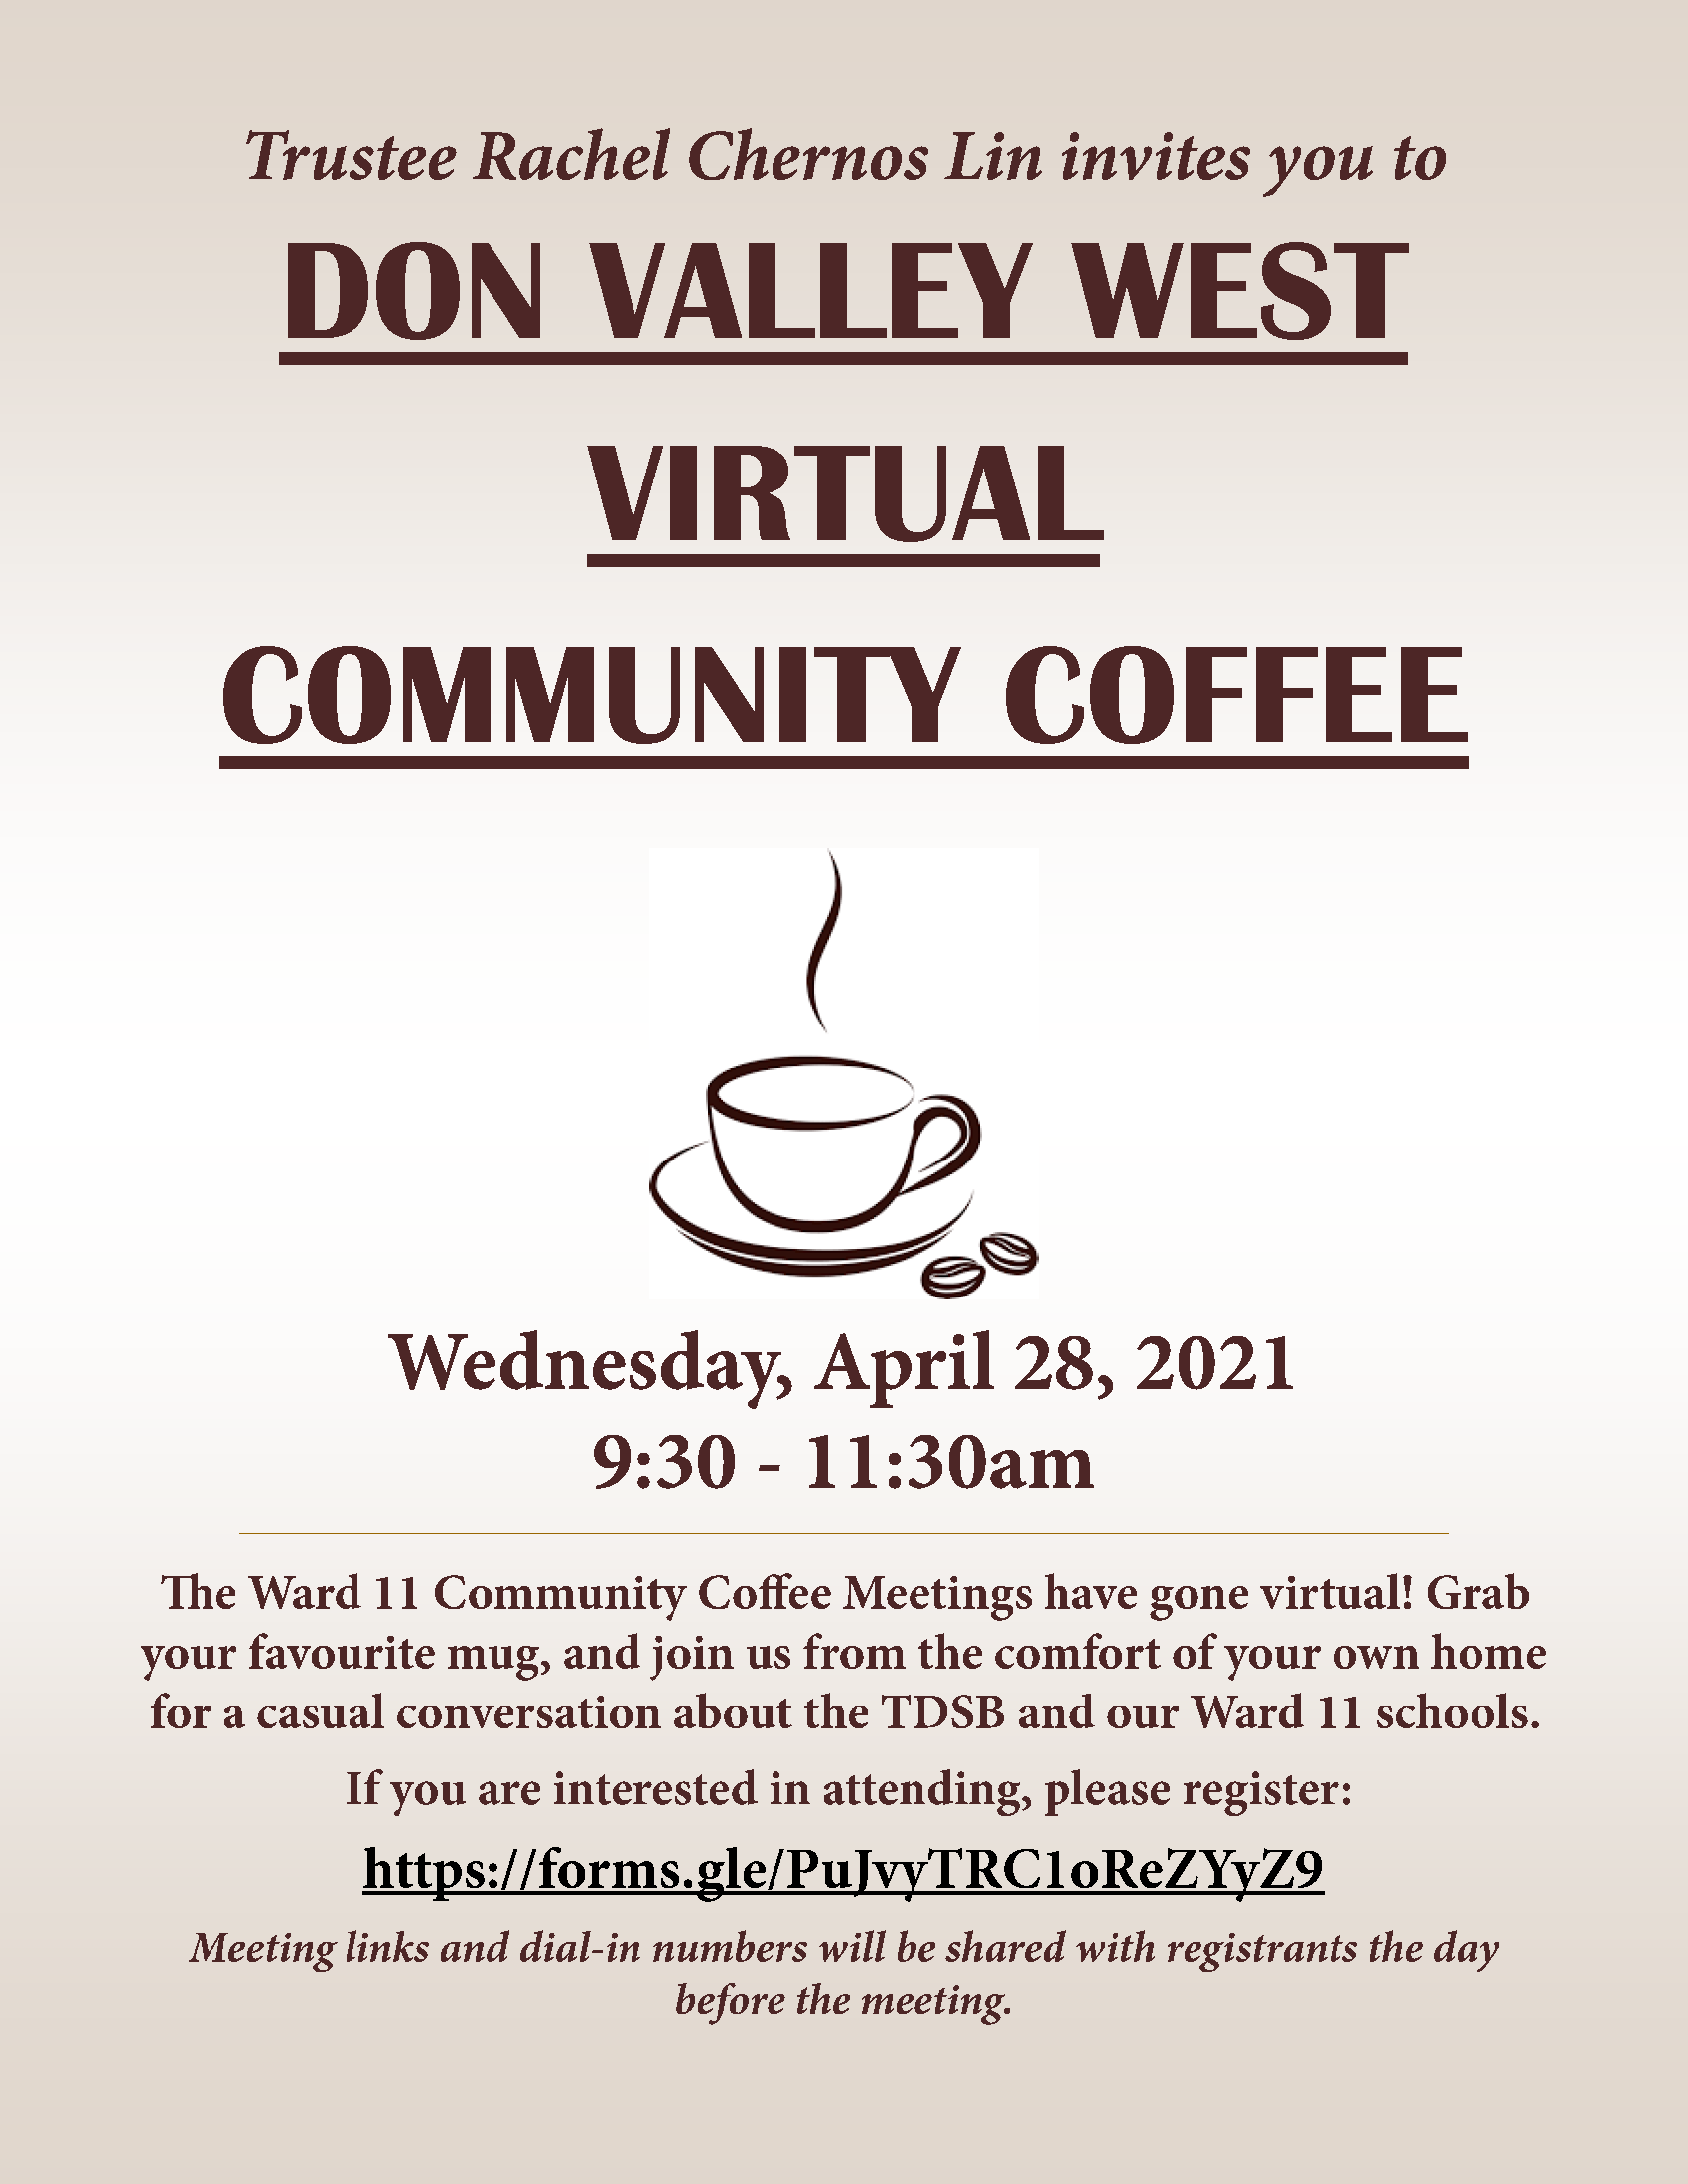 2021 04 28 R. Chernos Lin Virtual Community Coffee Flyer